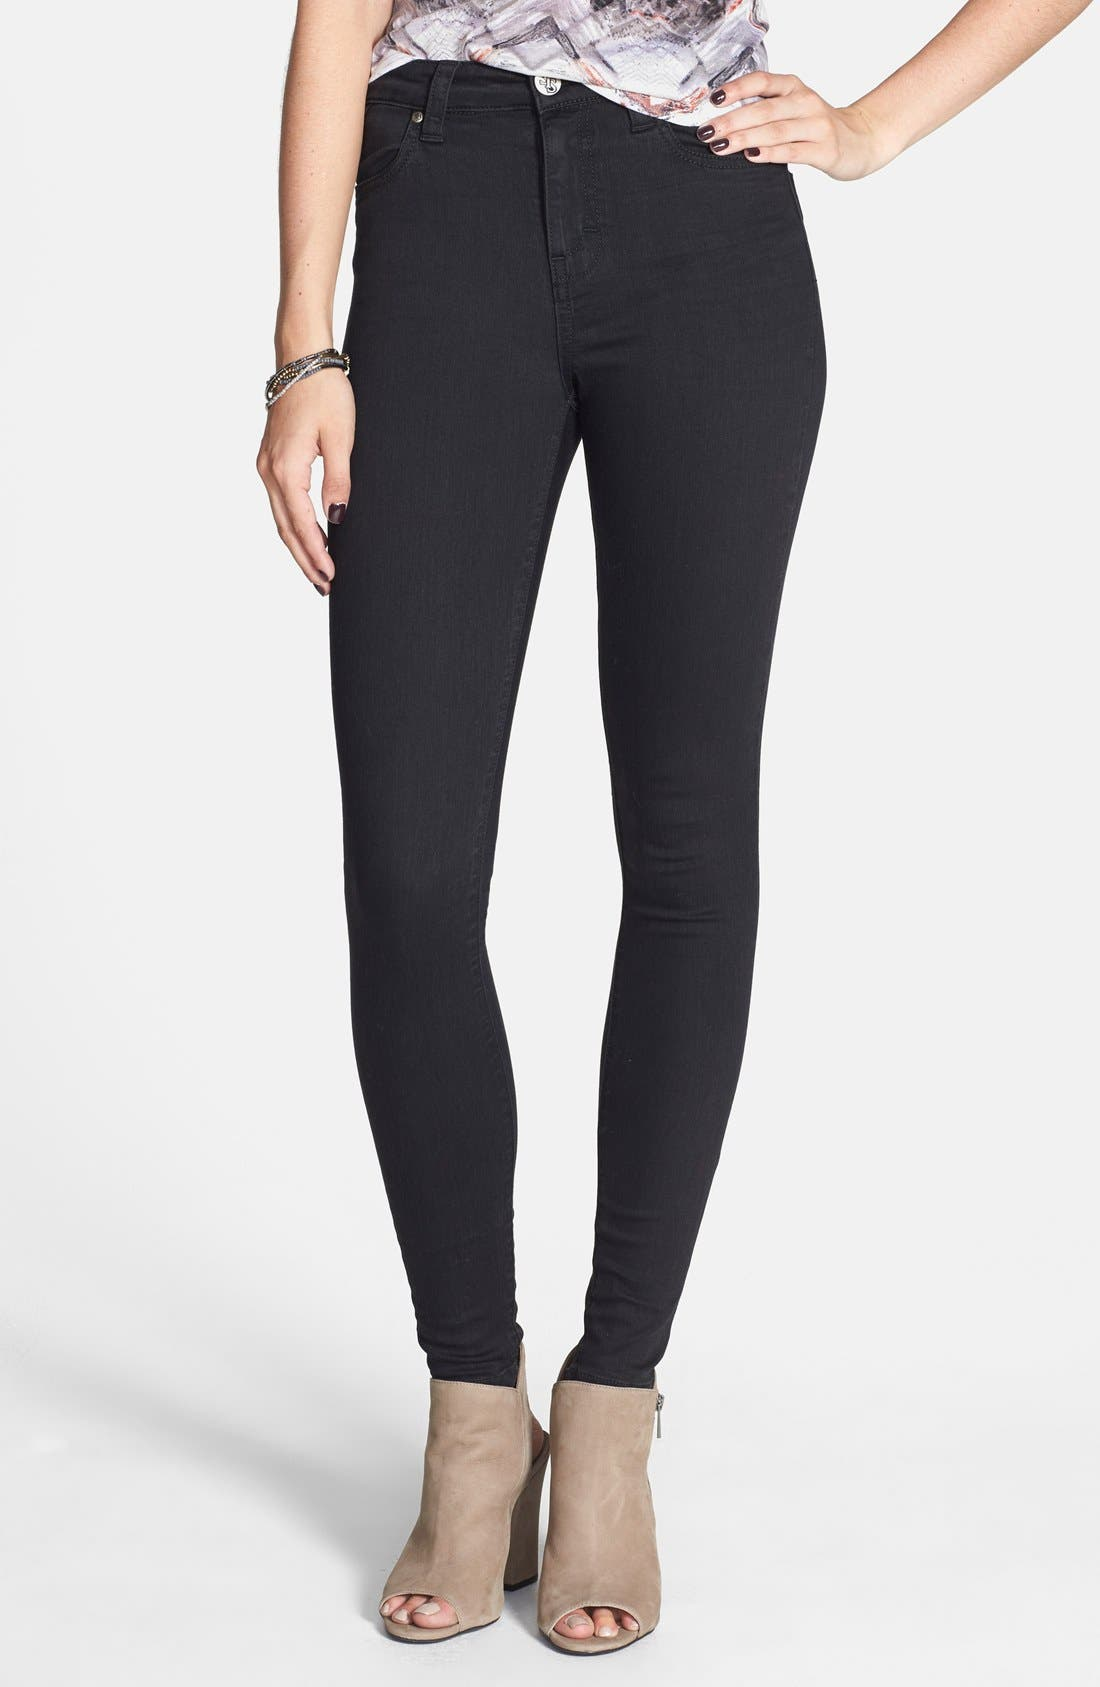 Alternate Image 1 Selected - STS Blue 'Elle' High Waist Skinny Jeans